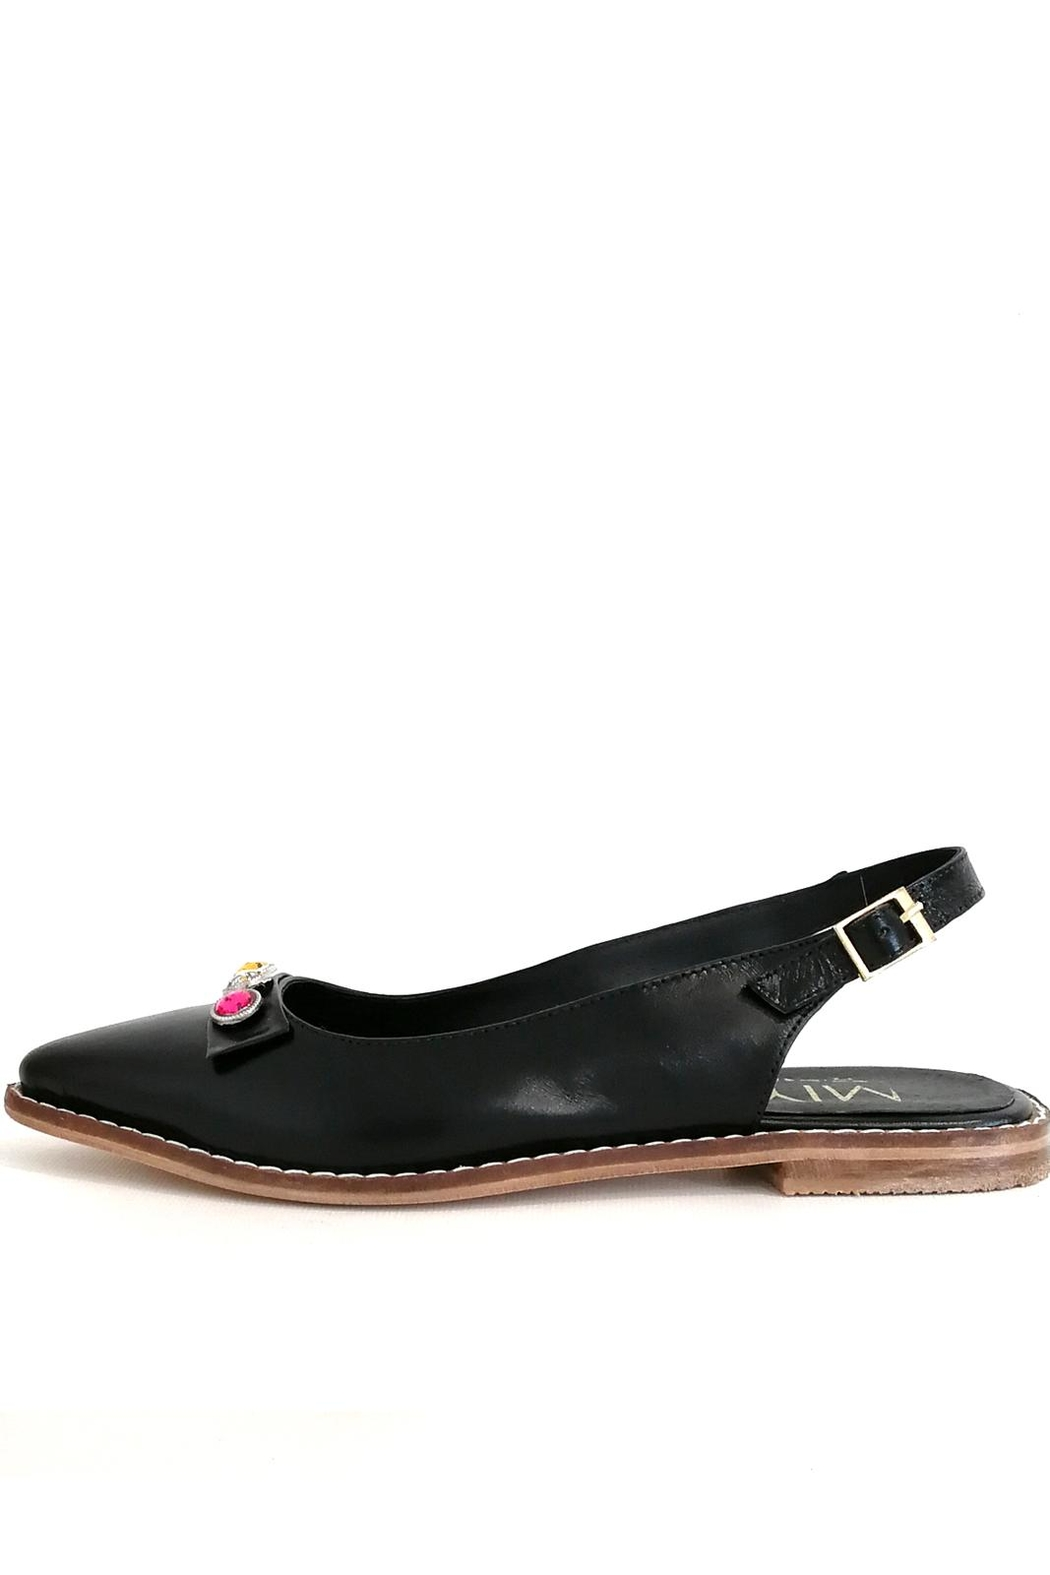 MIYE COLLAZZO Black Sapling Shoe - Main Image